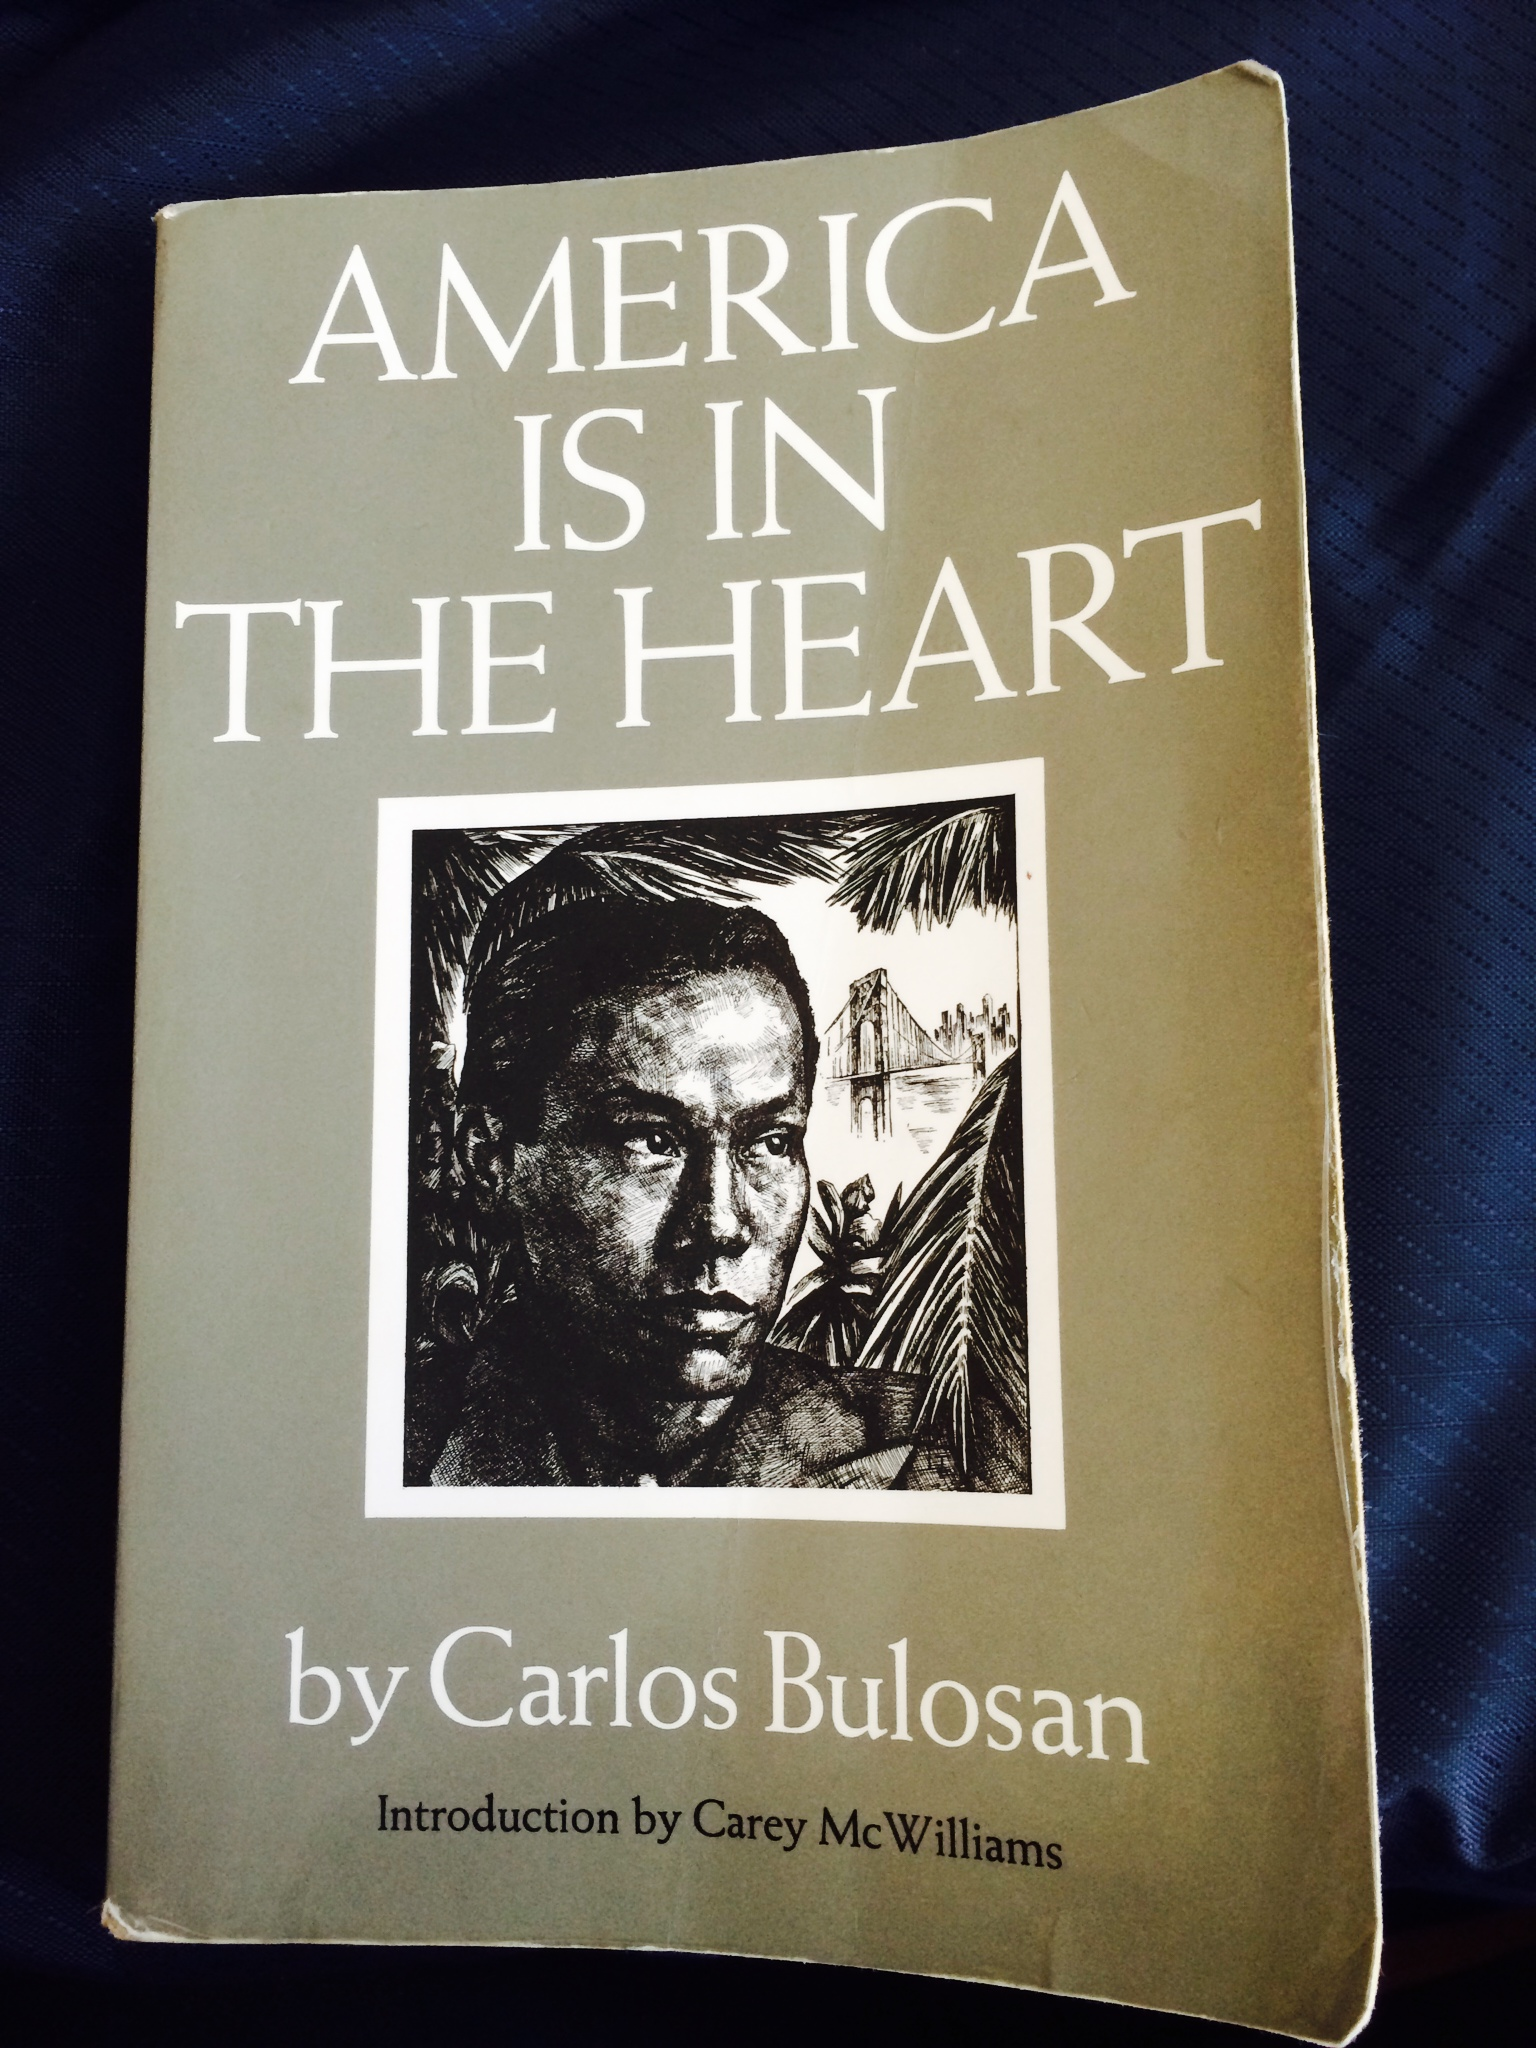 an analysis of america is in the heart by carlos bulosan Dive deep into carlos bulosan's america is in the heart with extended analysis,  commentary, and discussion.